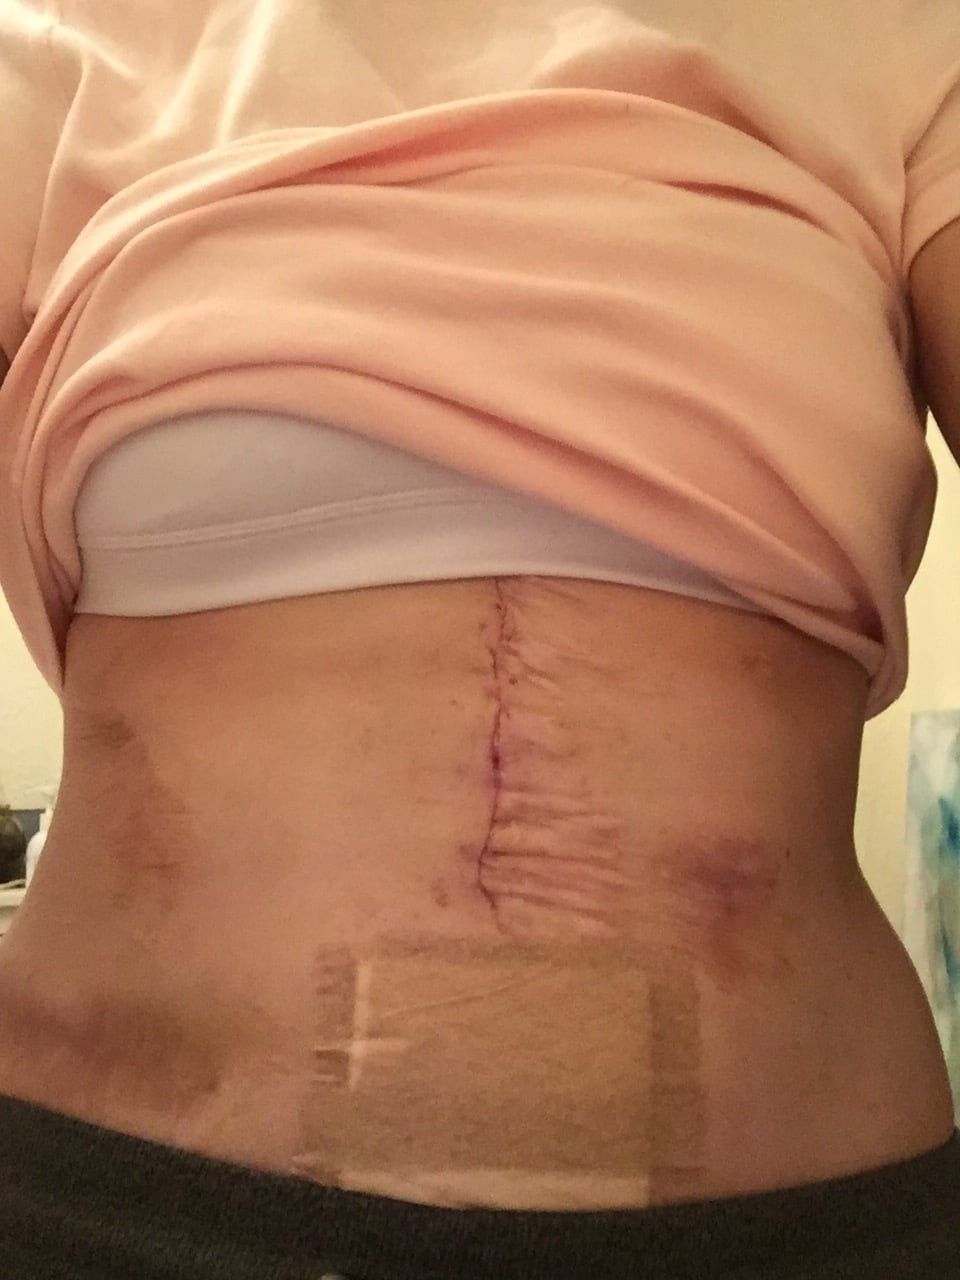 After hernia operation